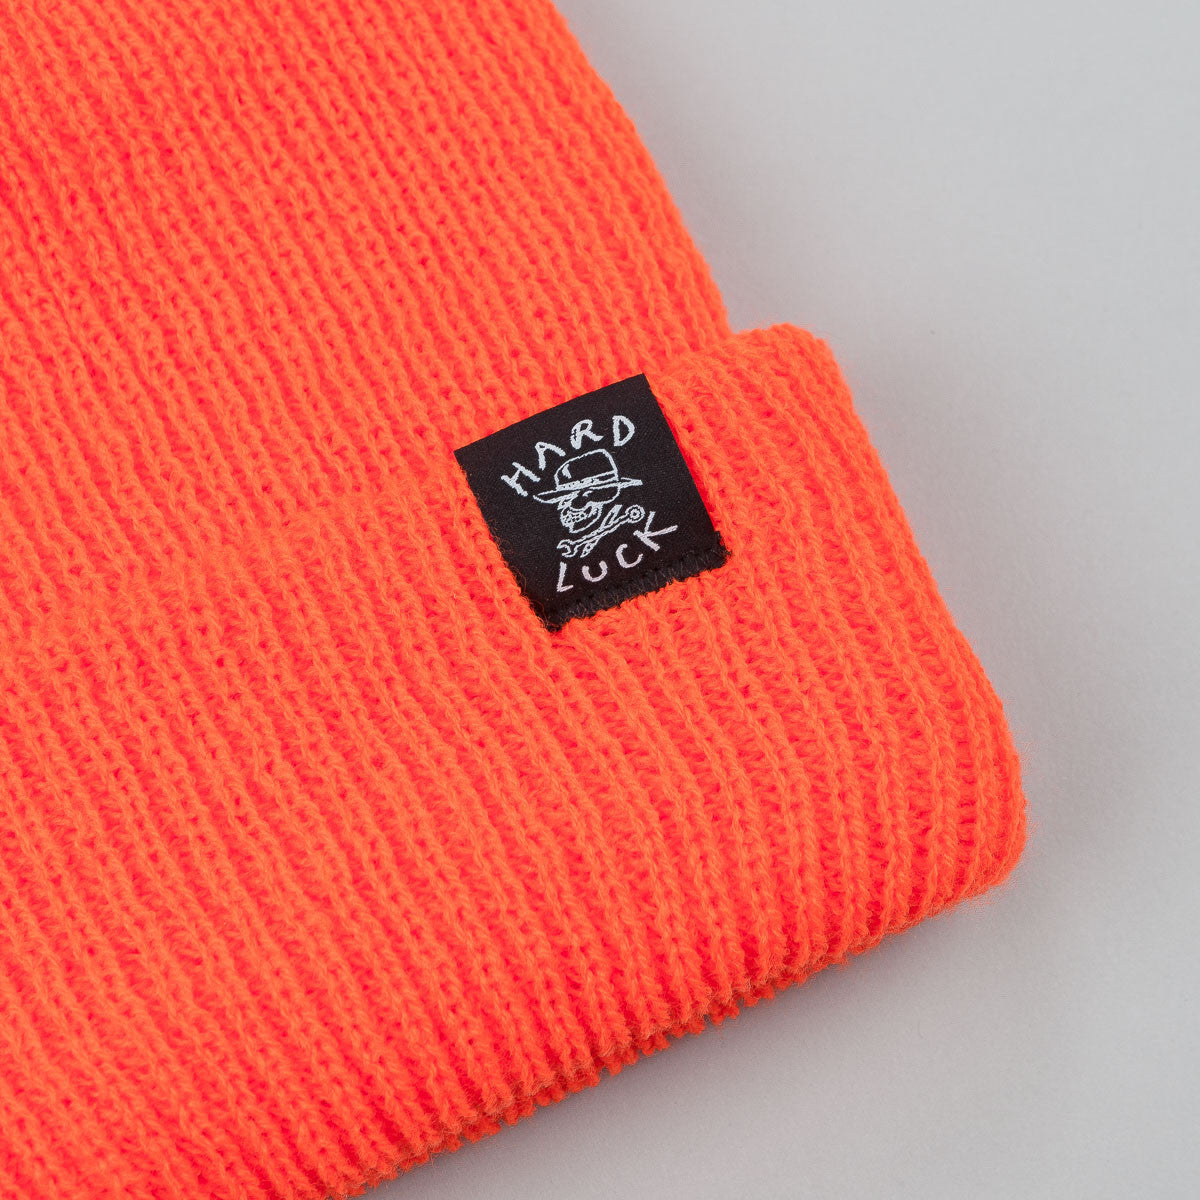 Hard Luck Beanie - Orange